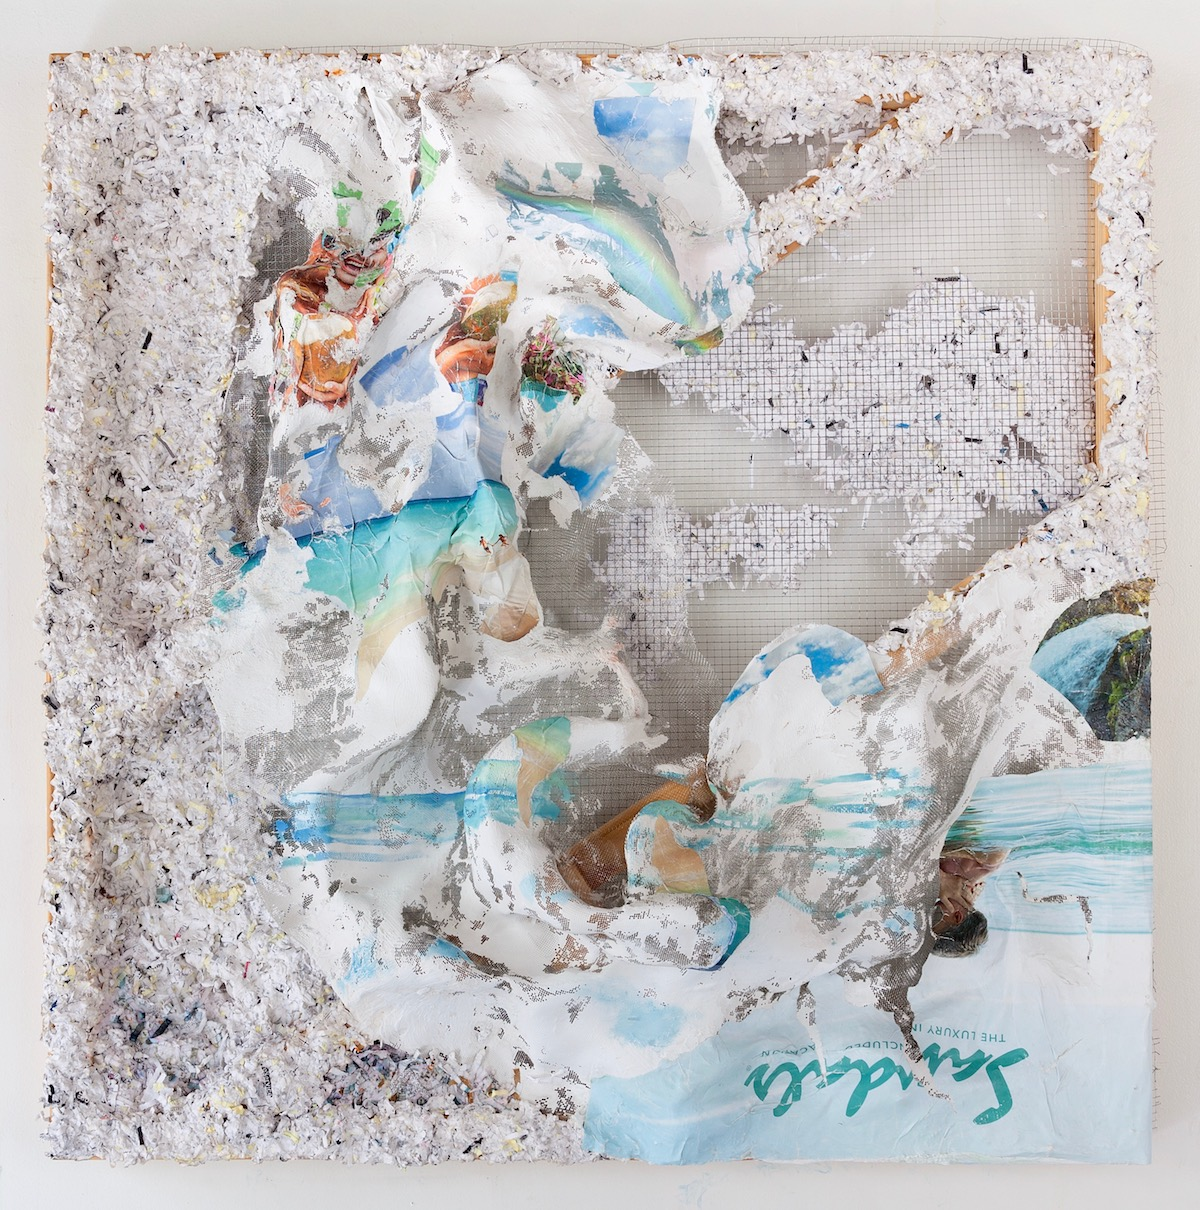 """Camille Hoffman beautifully applies paint and mixed media to create collaged worlds that are fantastically mesmerizing, while also grounded and painterly. Her works inhabit a liminal space walking the line between realistic and other-worldly; timely and eternal."""